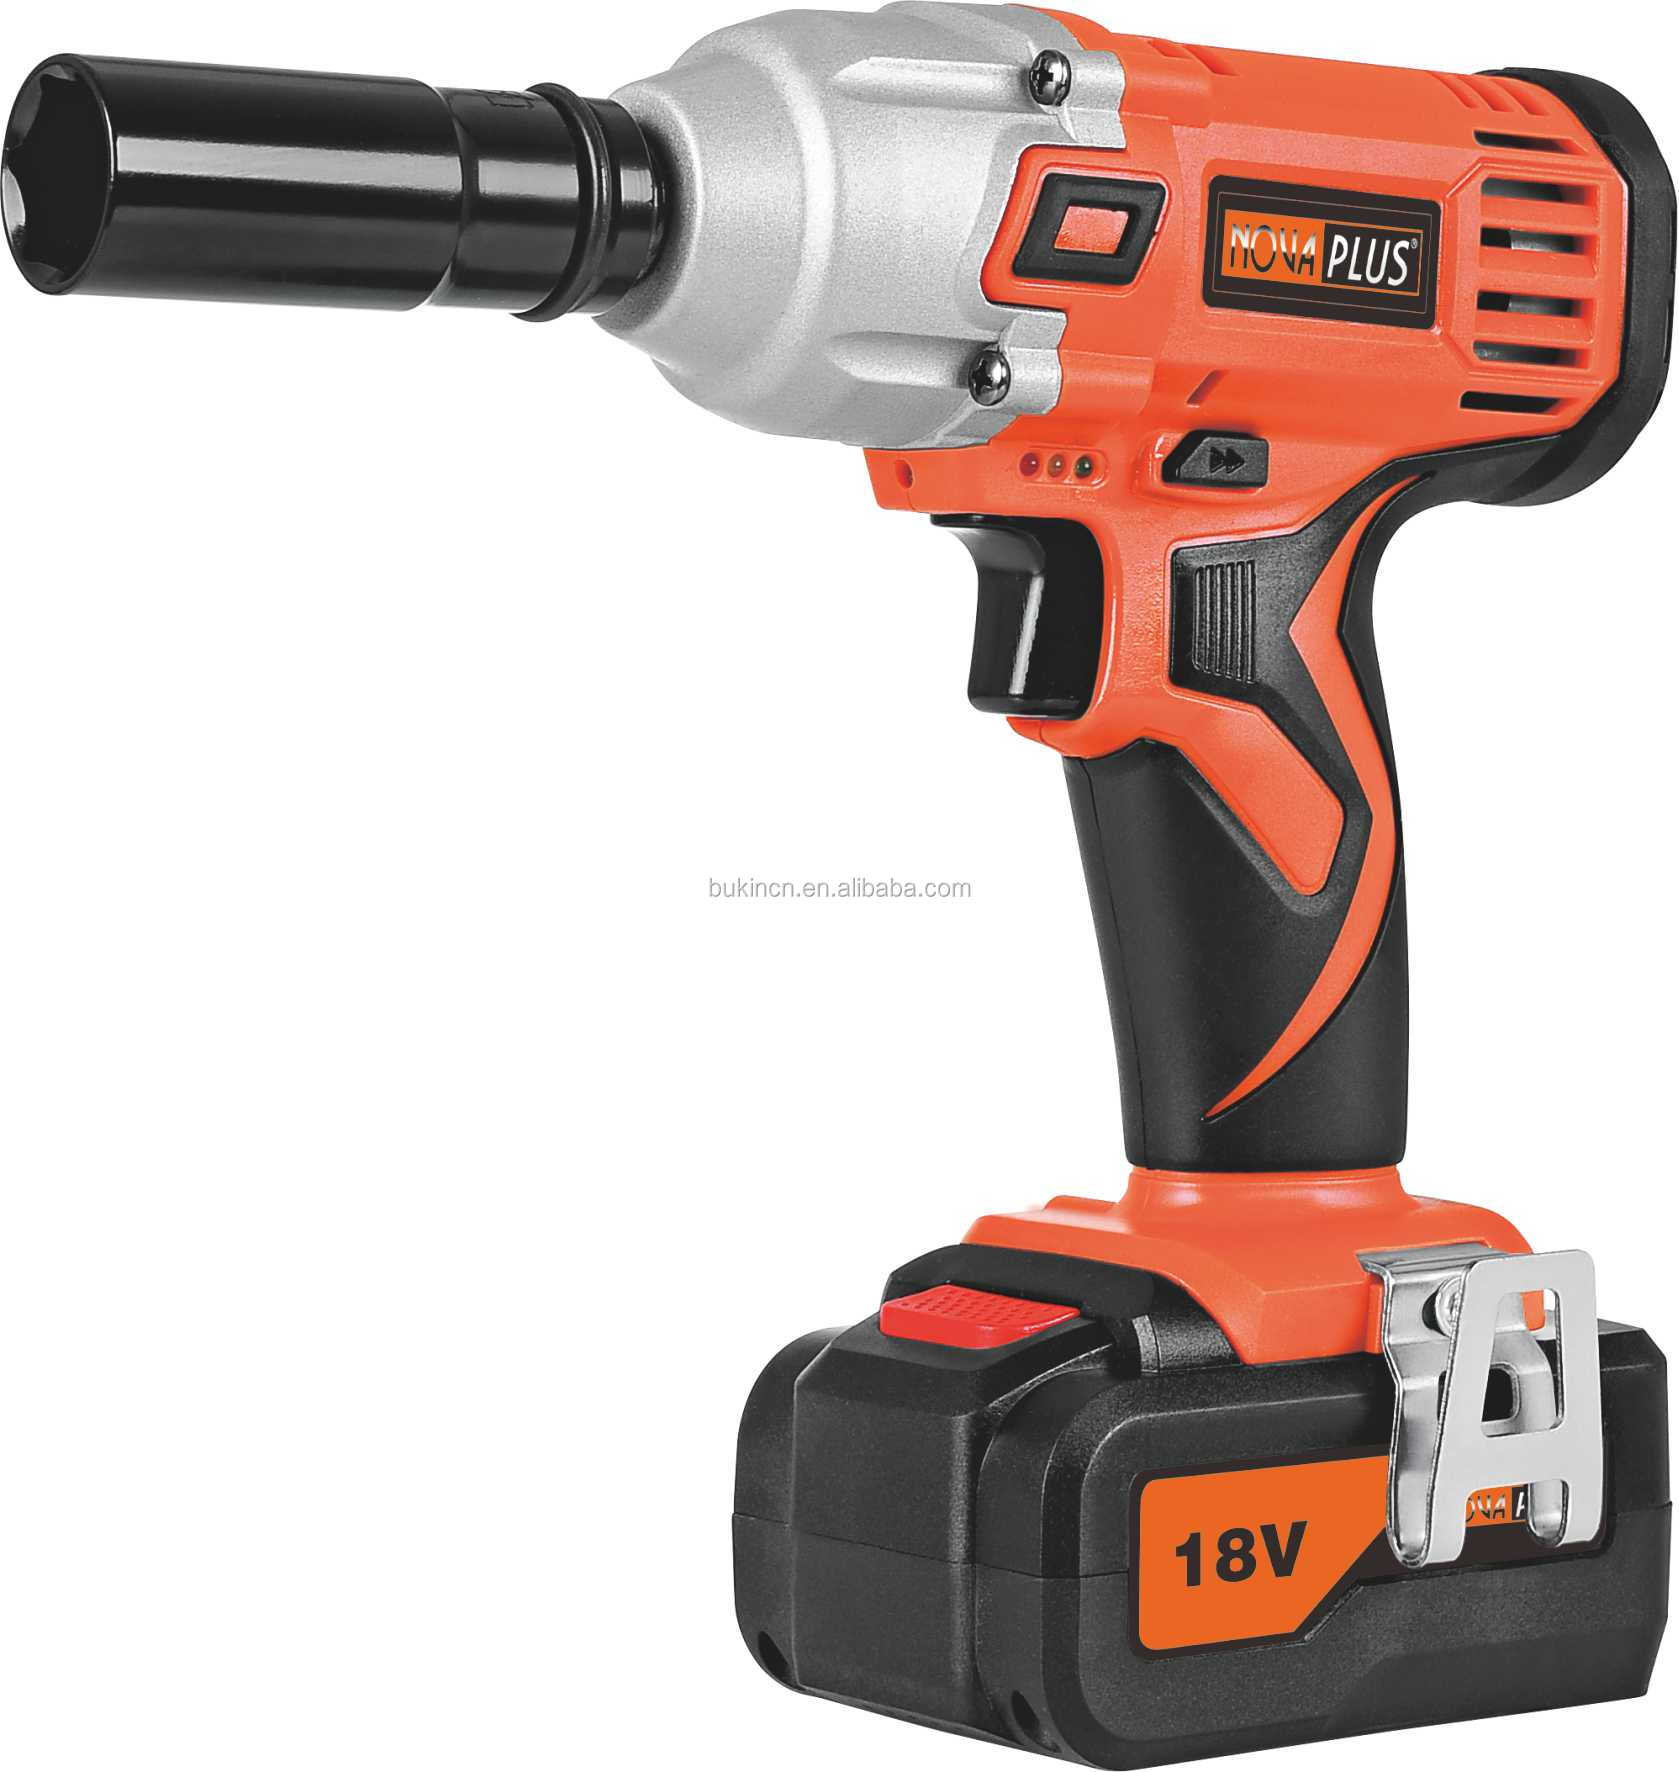 Cordless Impact Driver Electric Wrench Used For